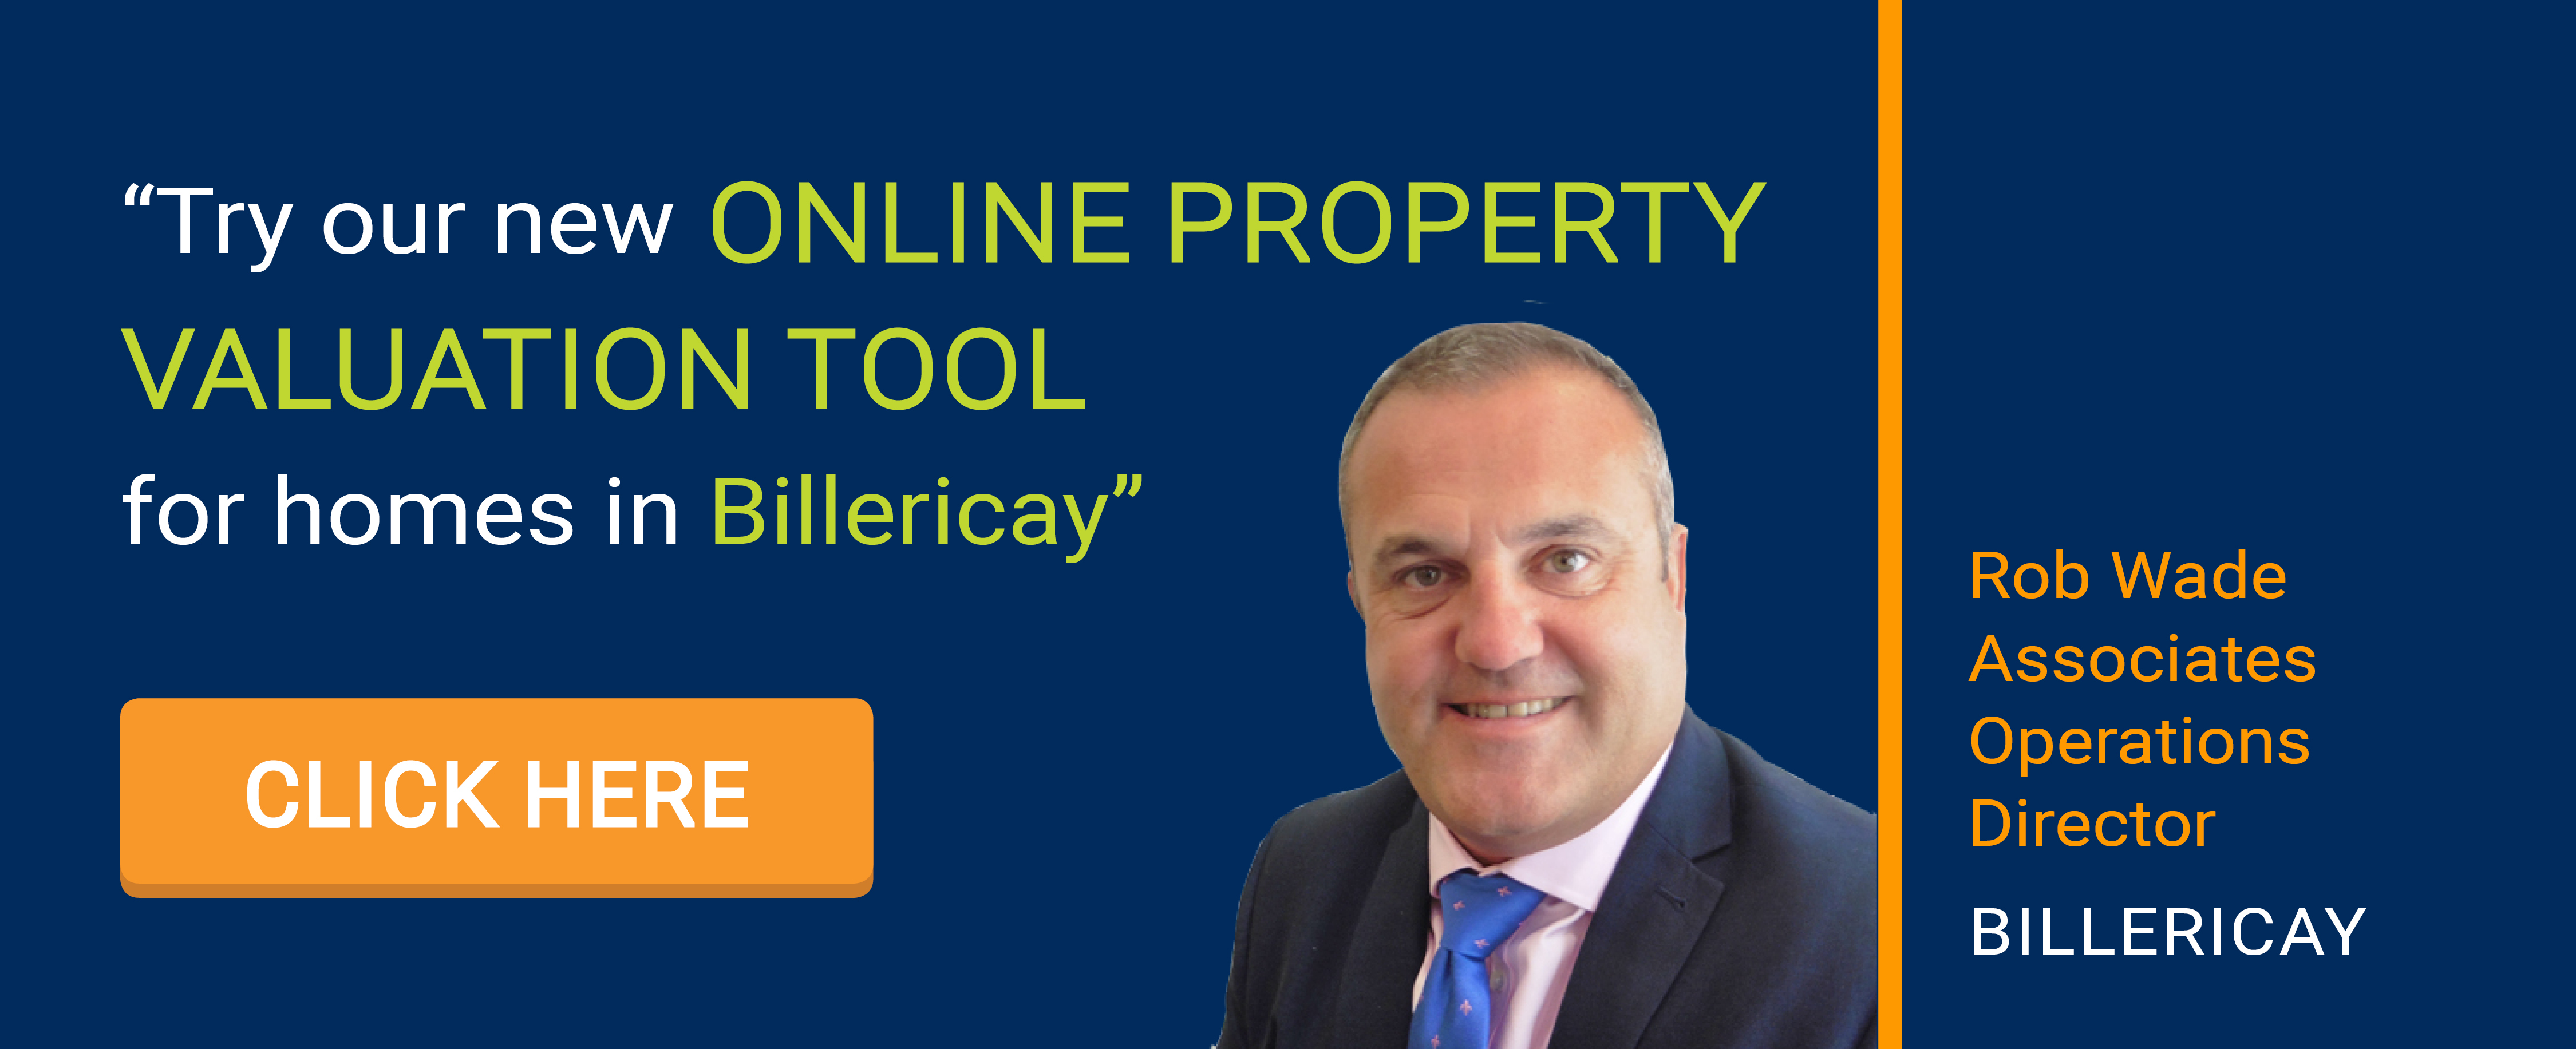 Online Valuation Tool website banner Billericay